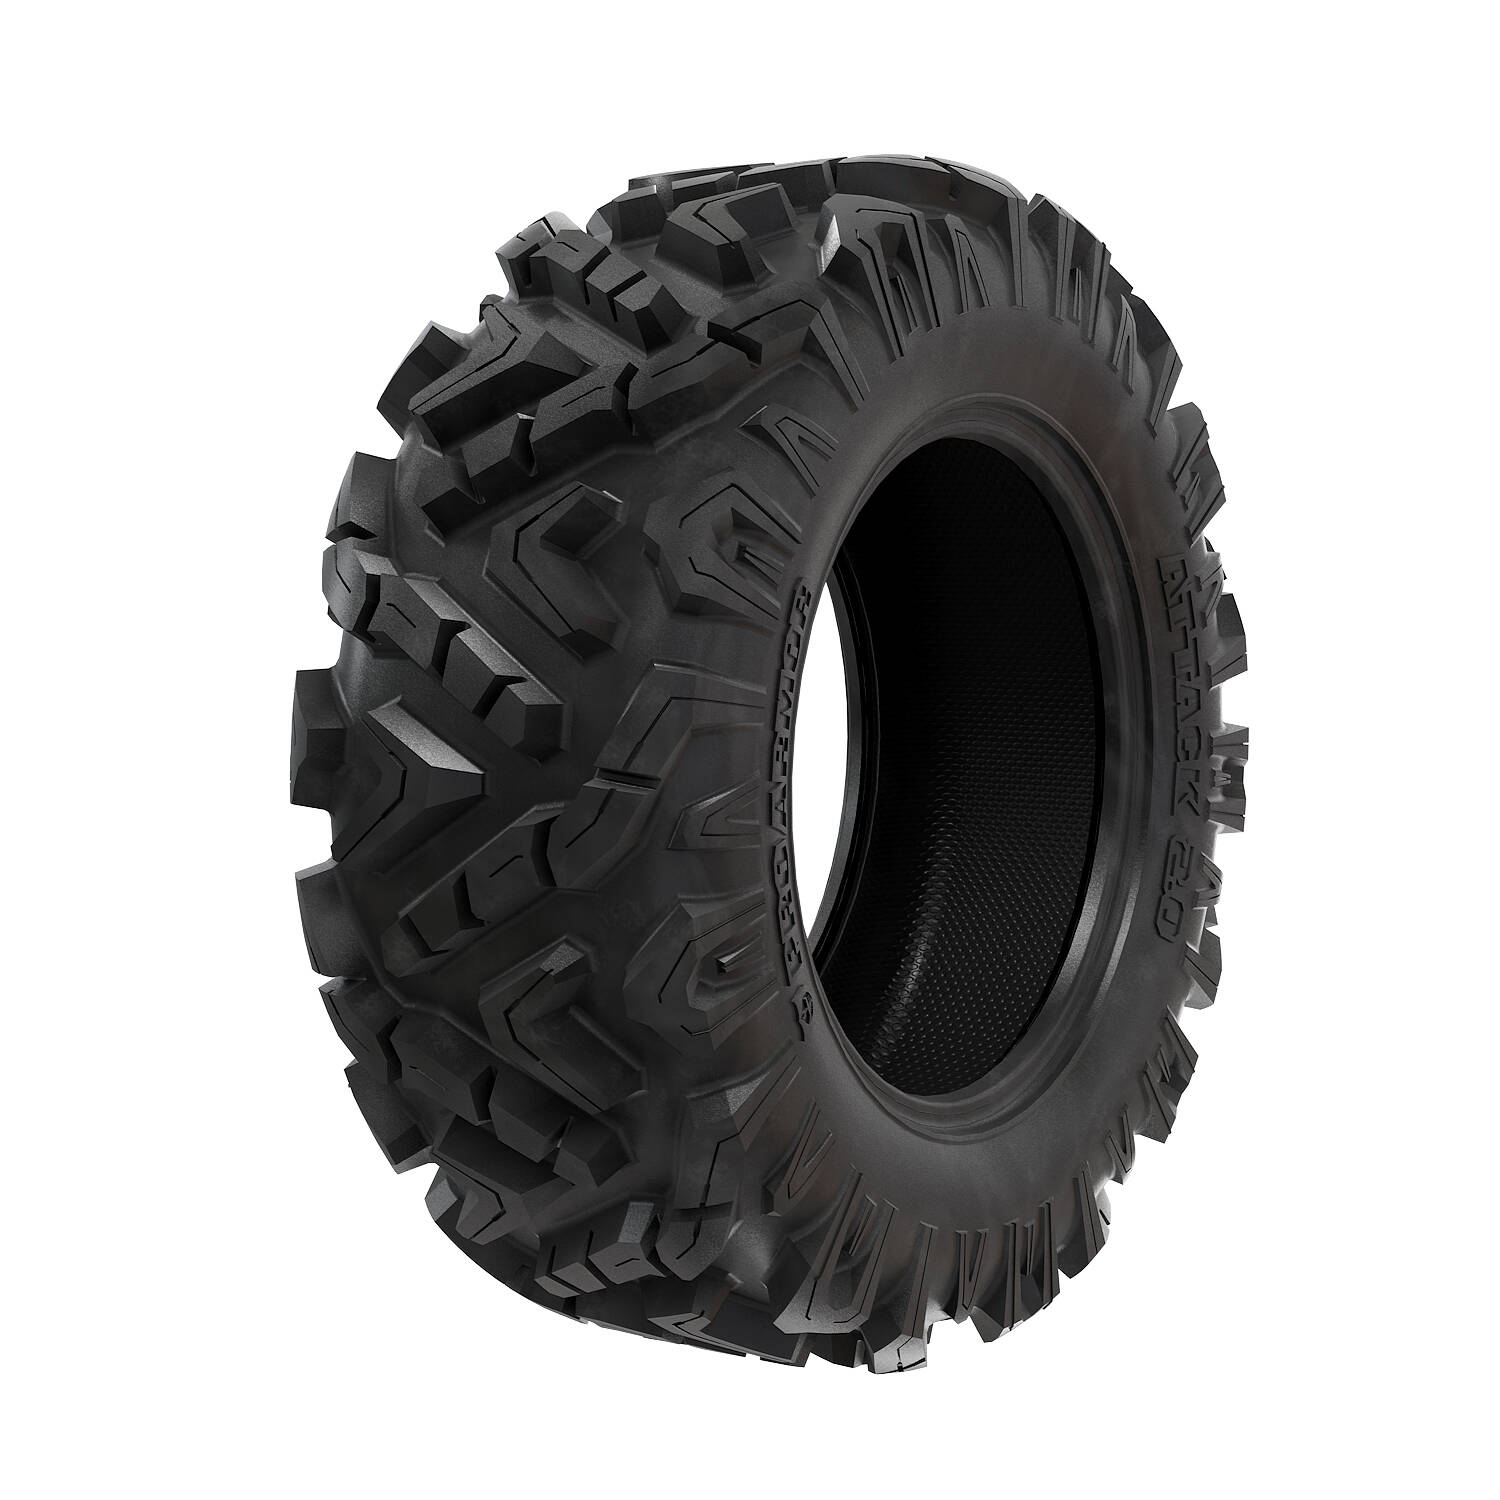 "Pro Armor® Tire Attack 2.0 - Front/Rear - 28""x10""R14"